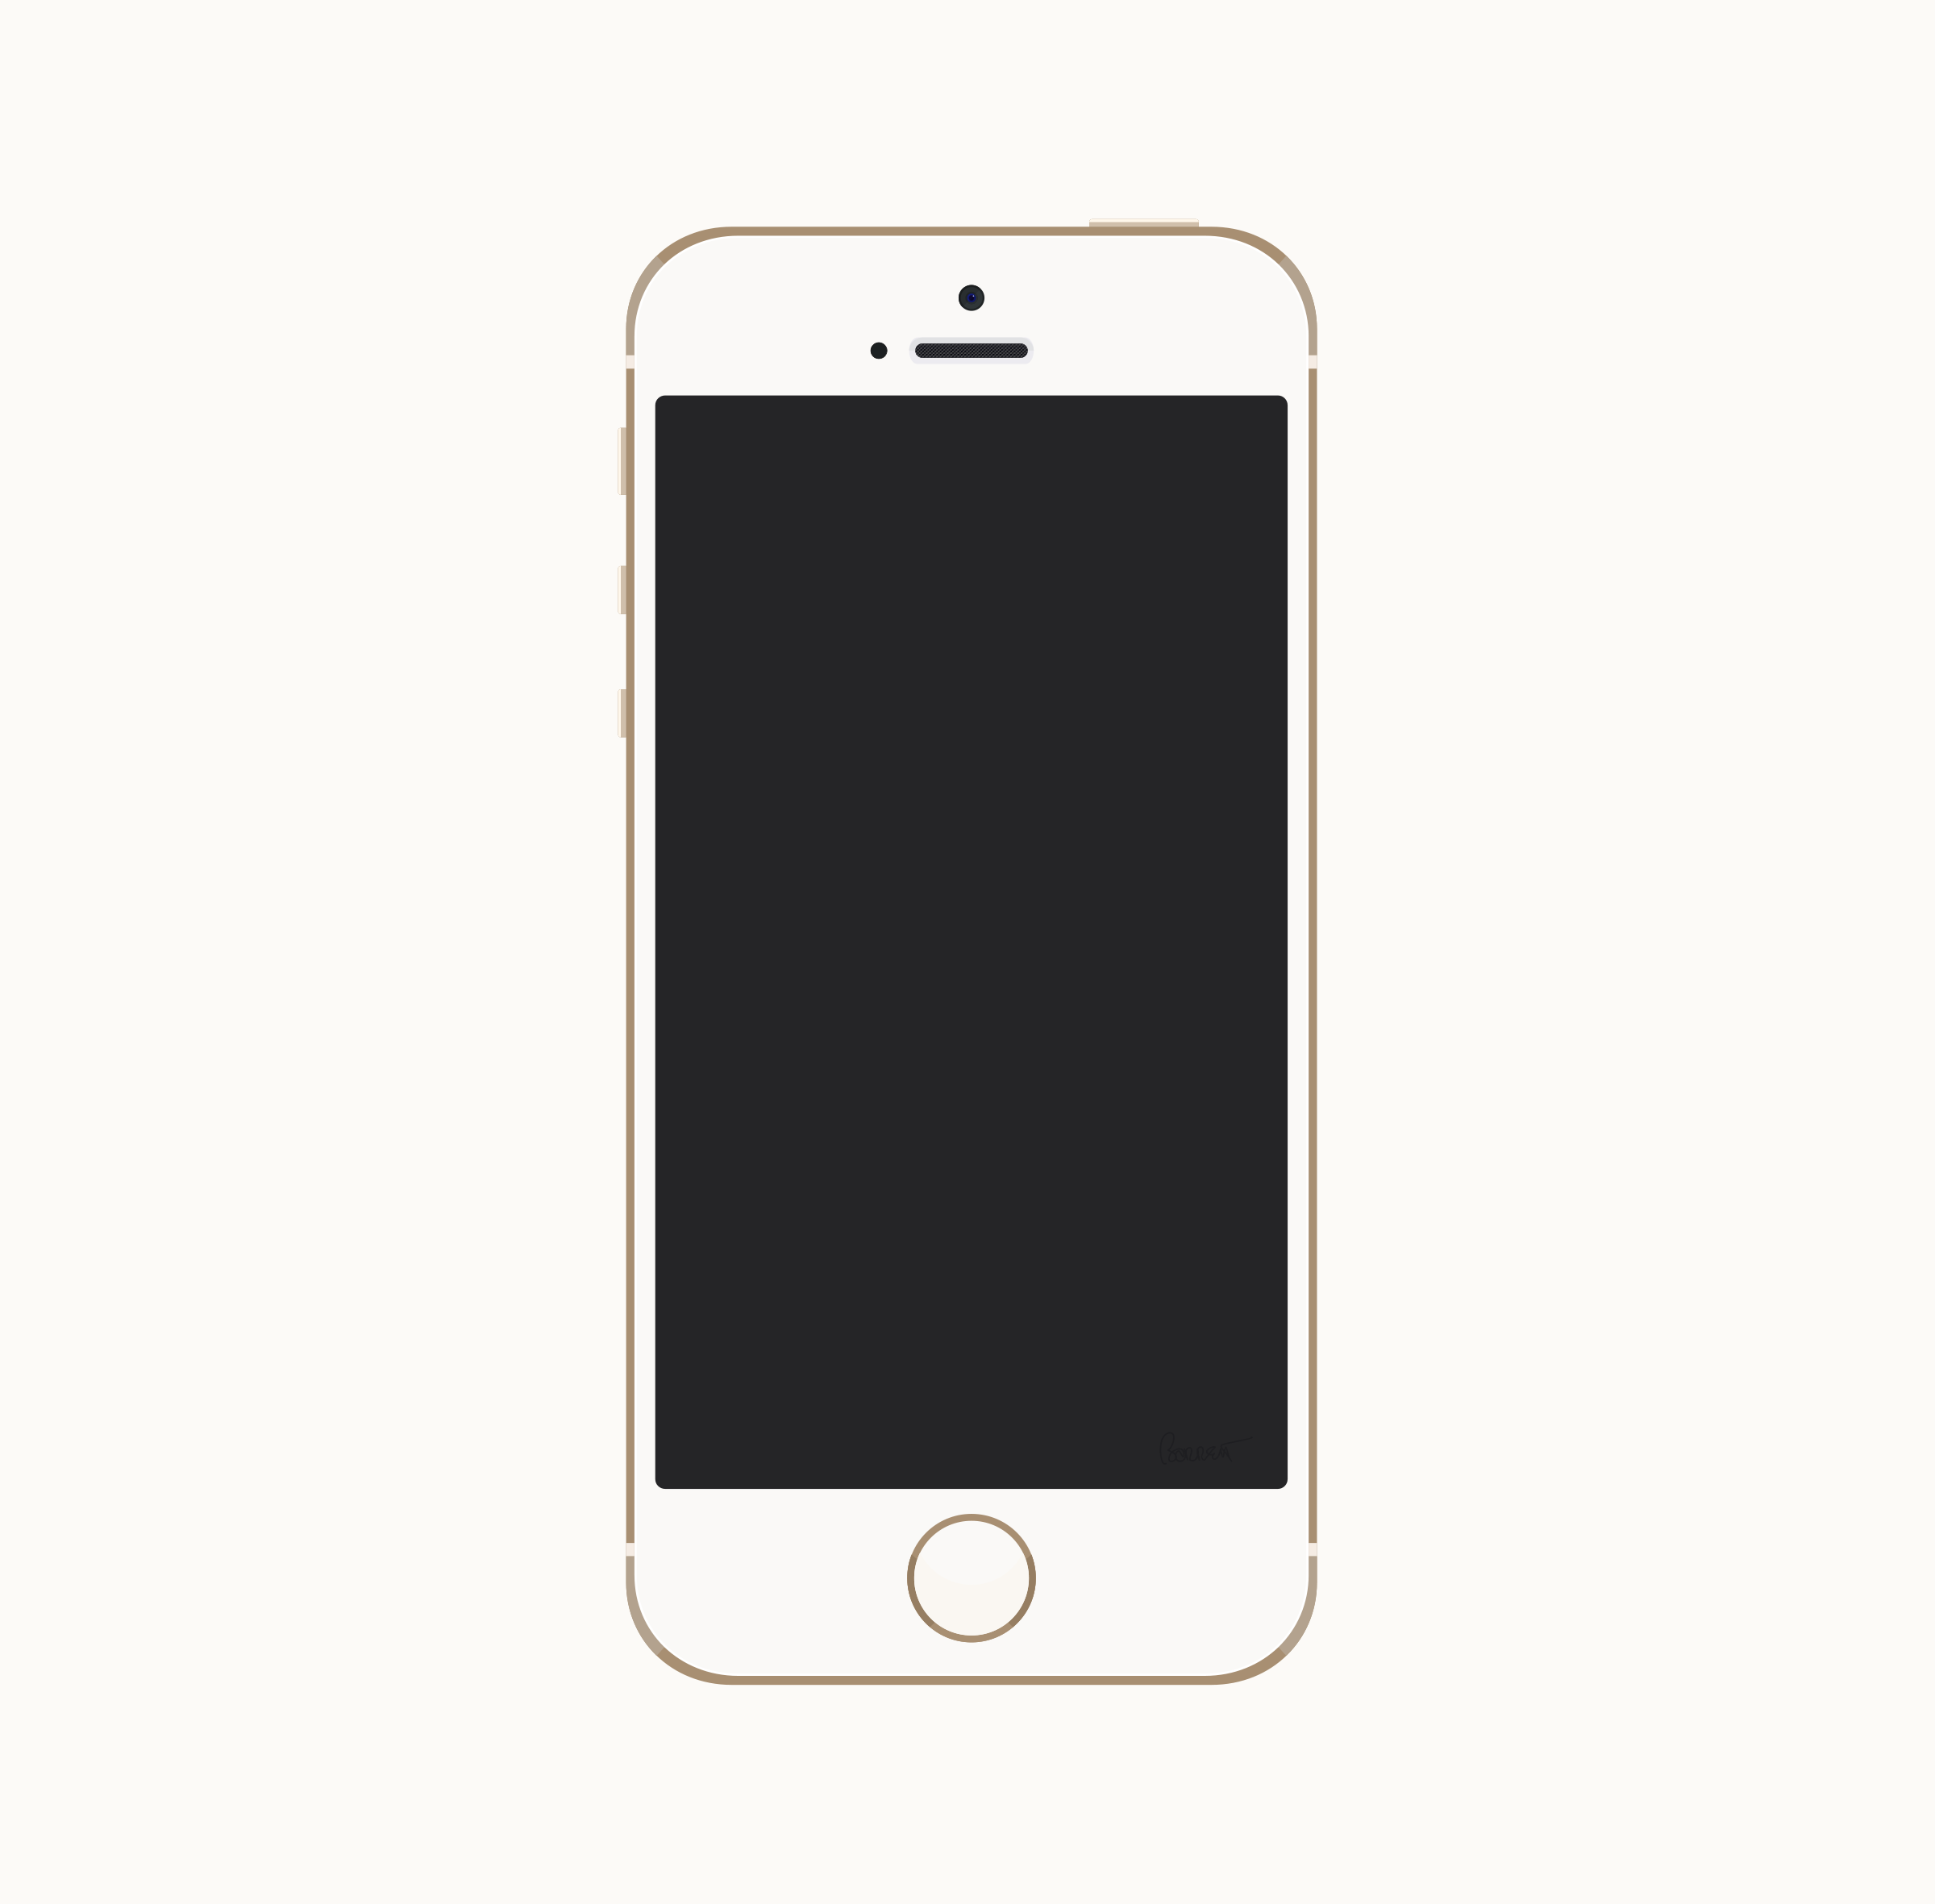 2830 Iphone free clipart.